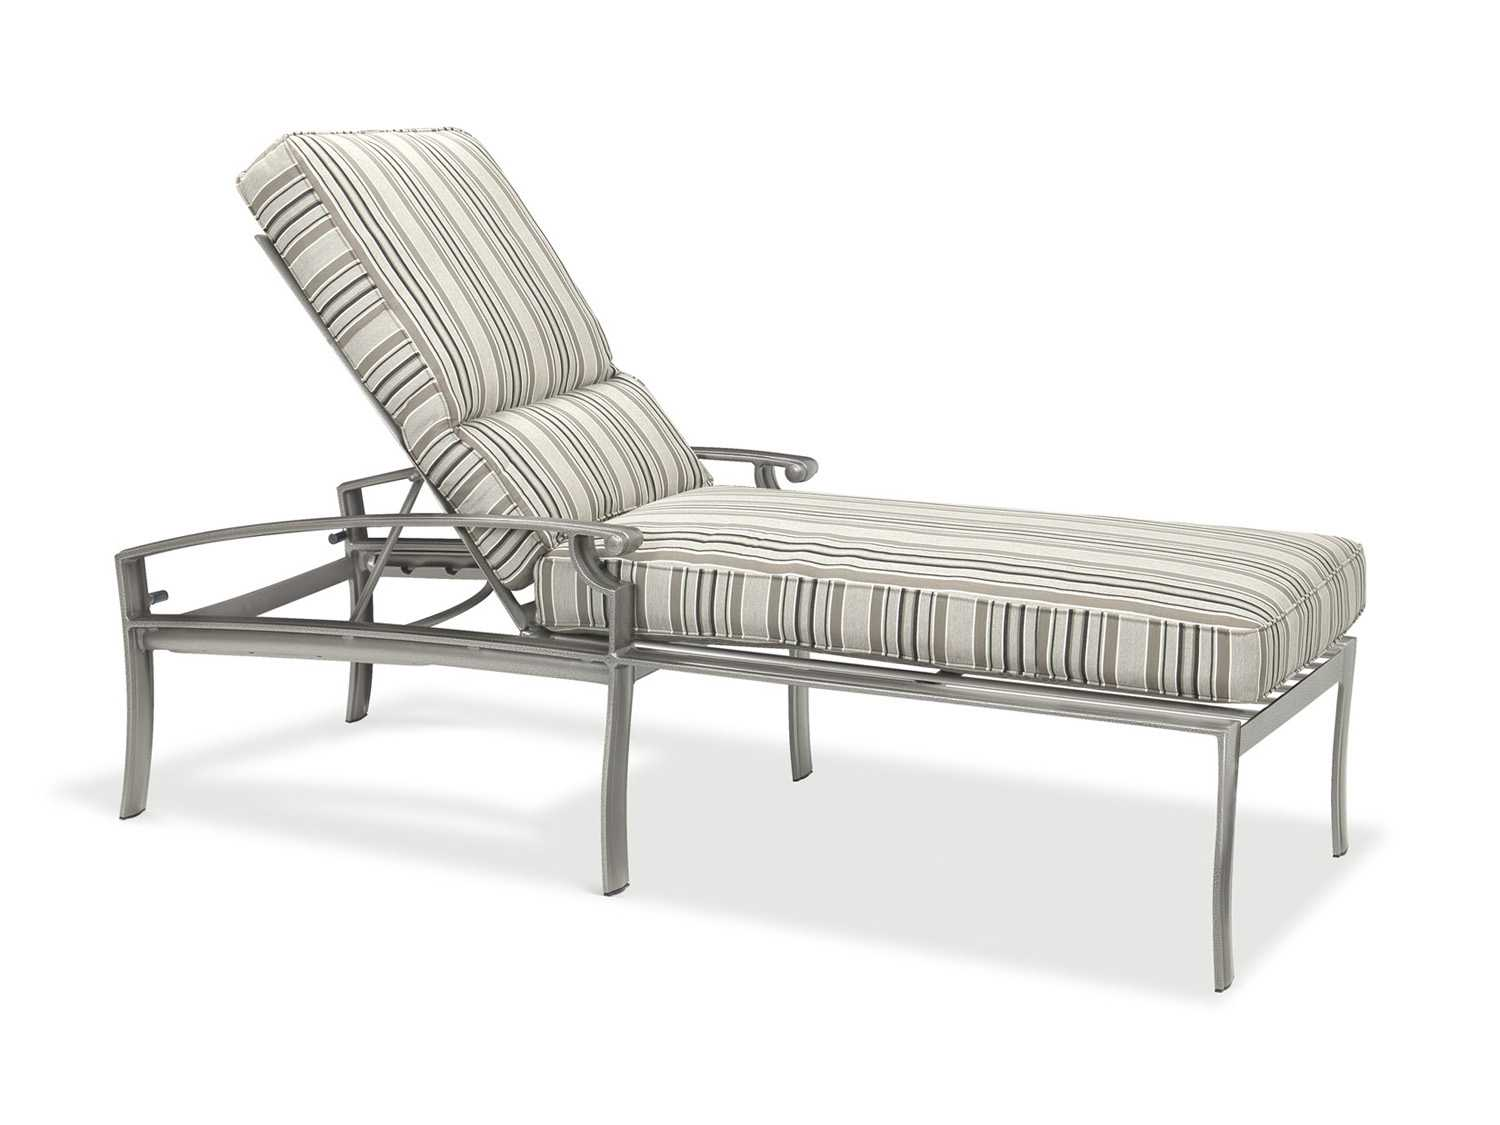 Winston sloane square cushion cast aluminum chaise j20009 for Cast aluminum chaise